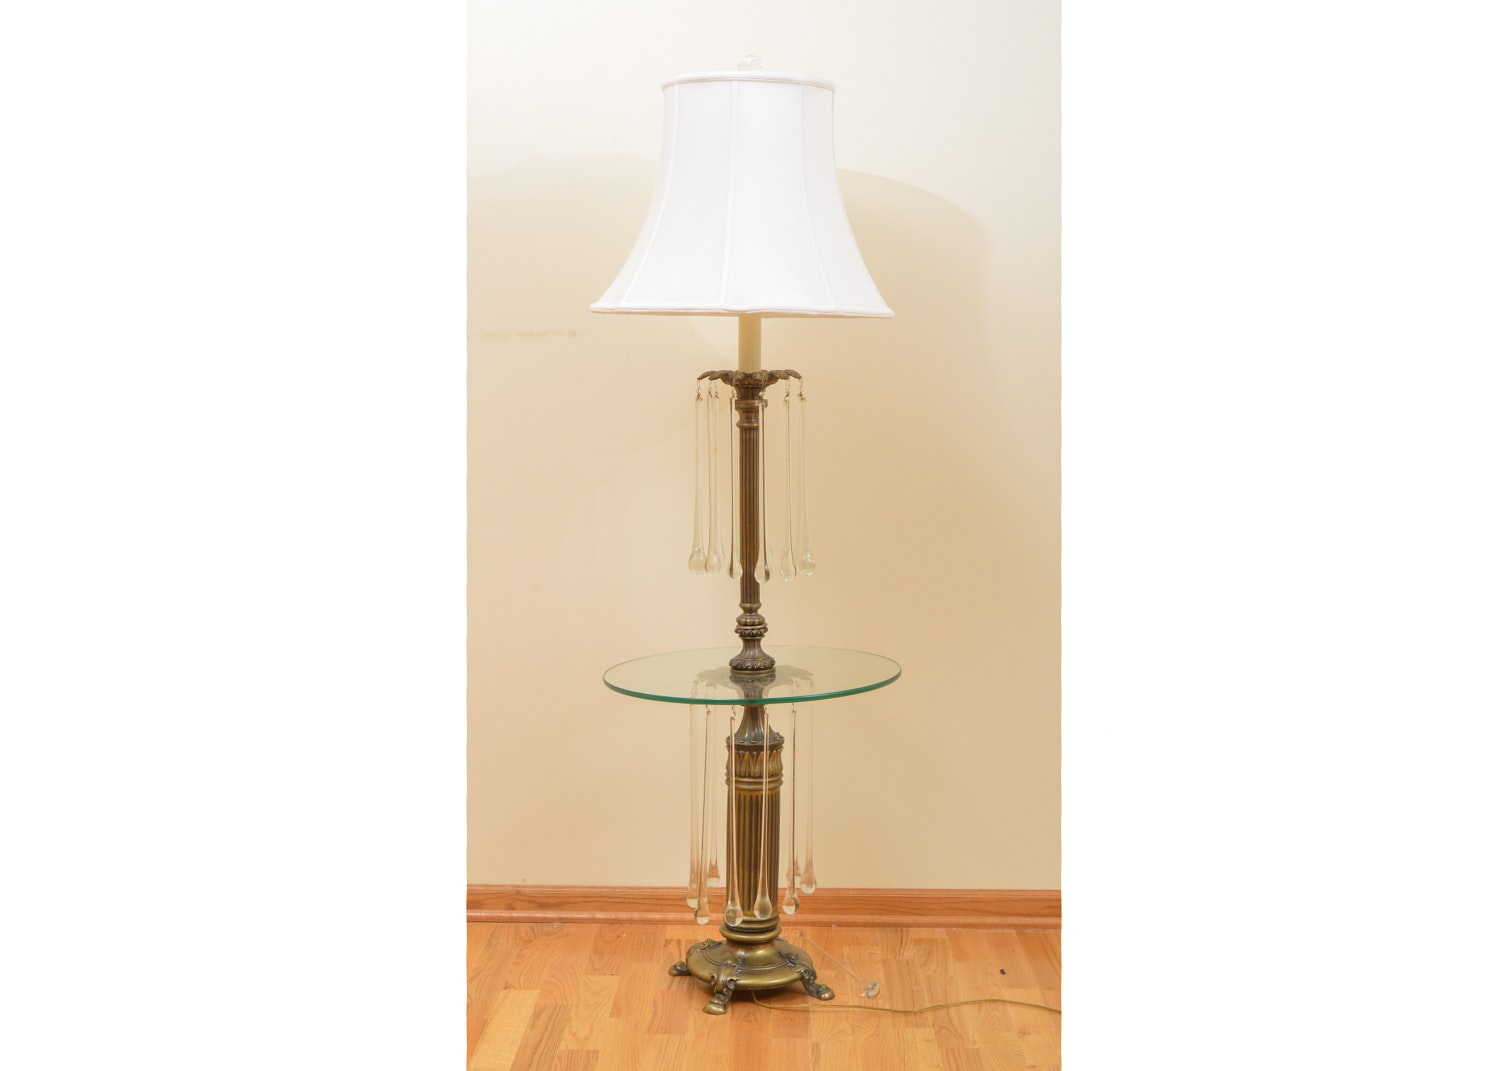 Vintage Neoclassical Revival Style Tray Table Floor Lamp